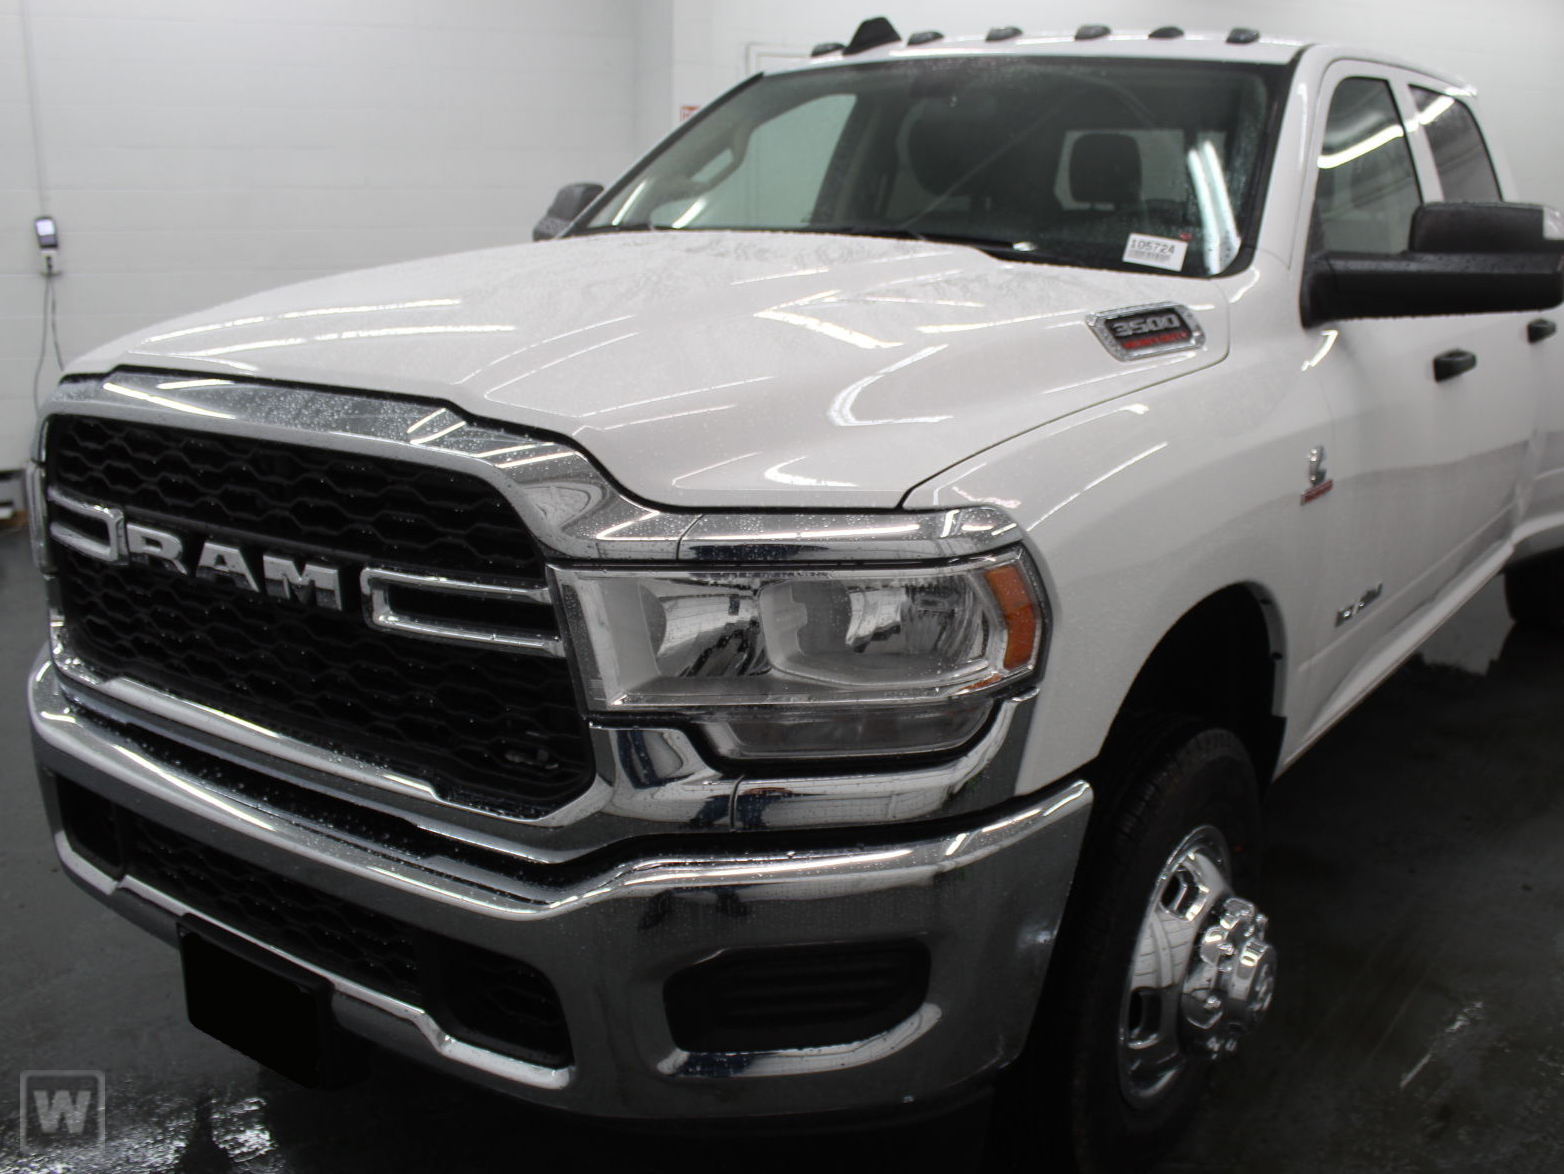 2020 Ram 3500 Crew Cab 4x4, Pickup #C20232 - photo 1